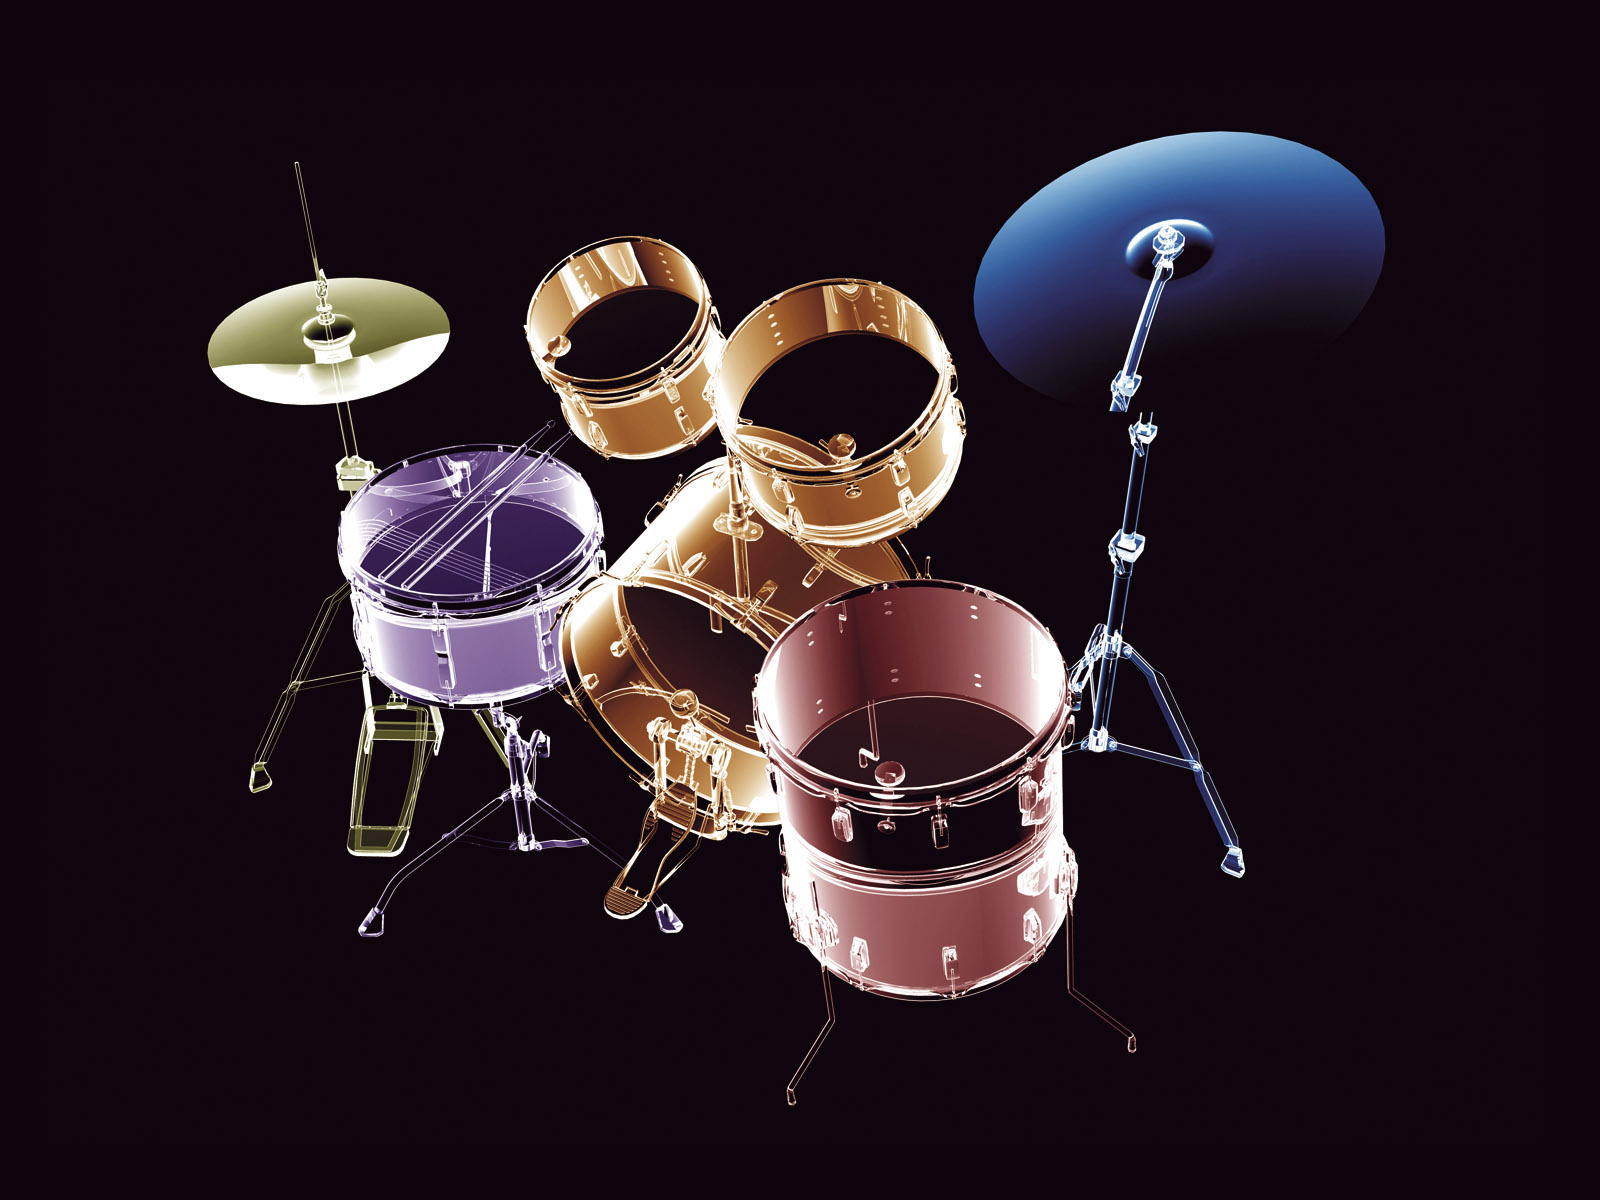 1600x1200 Transparent Drums desktop wallpapers and stock photos